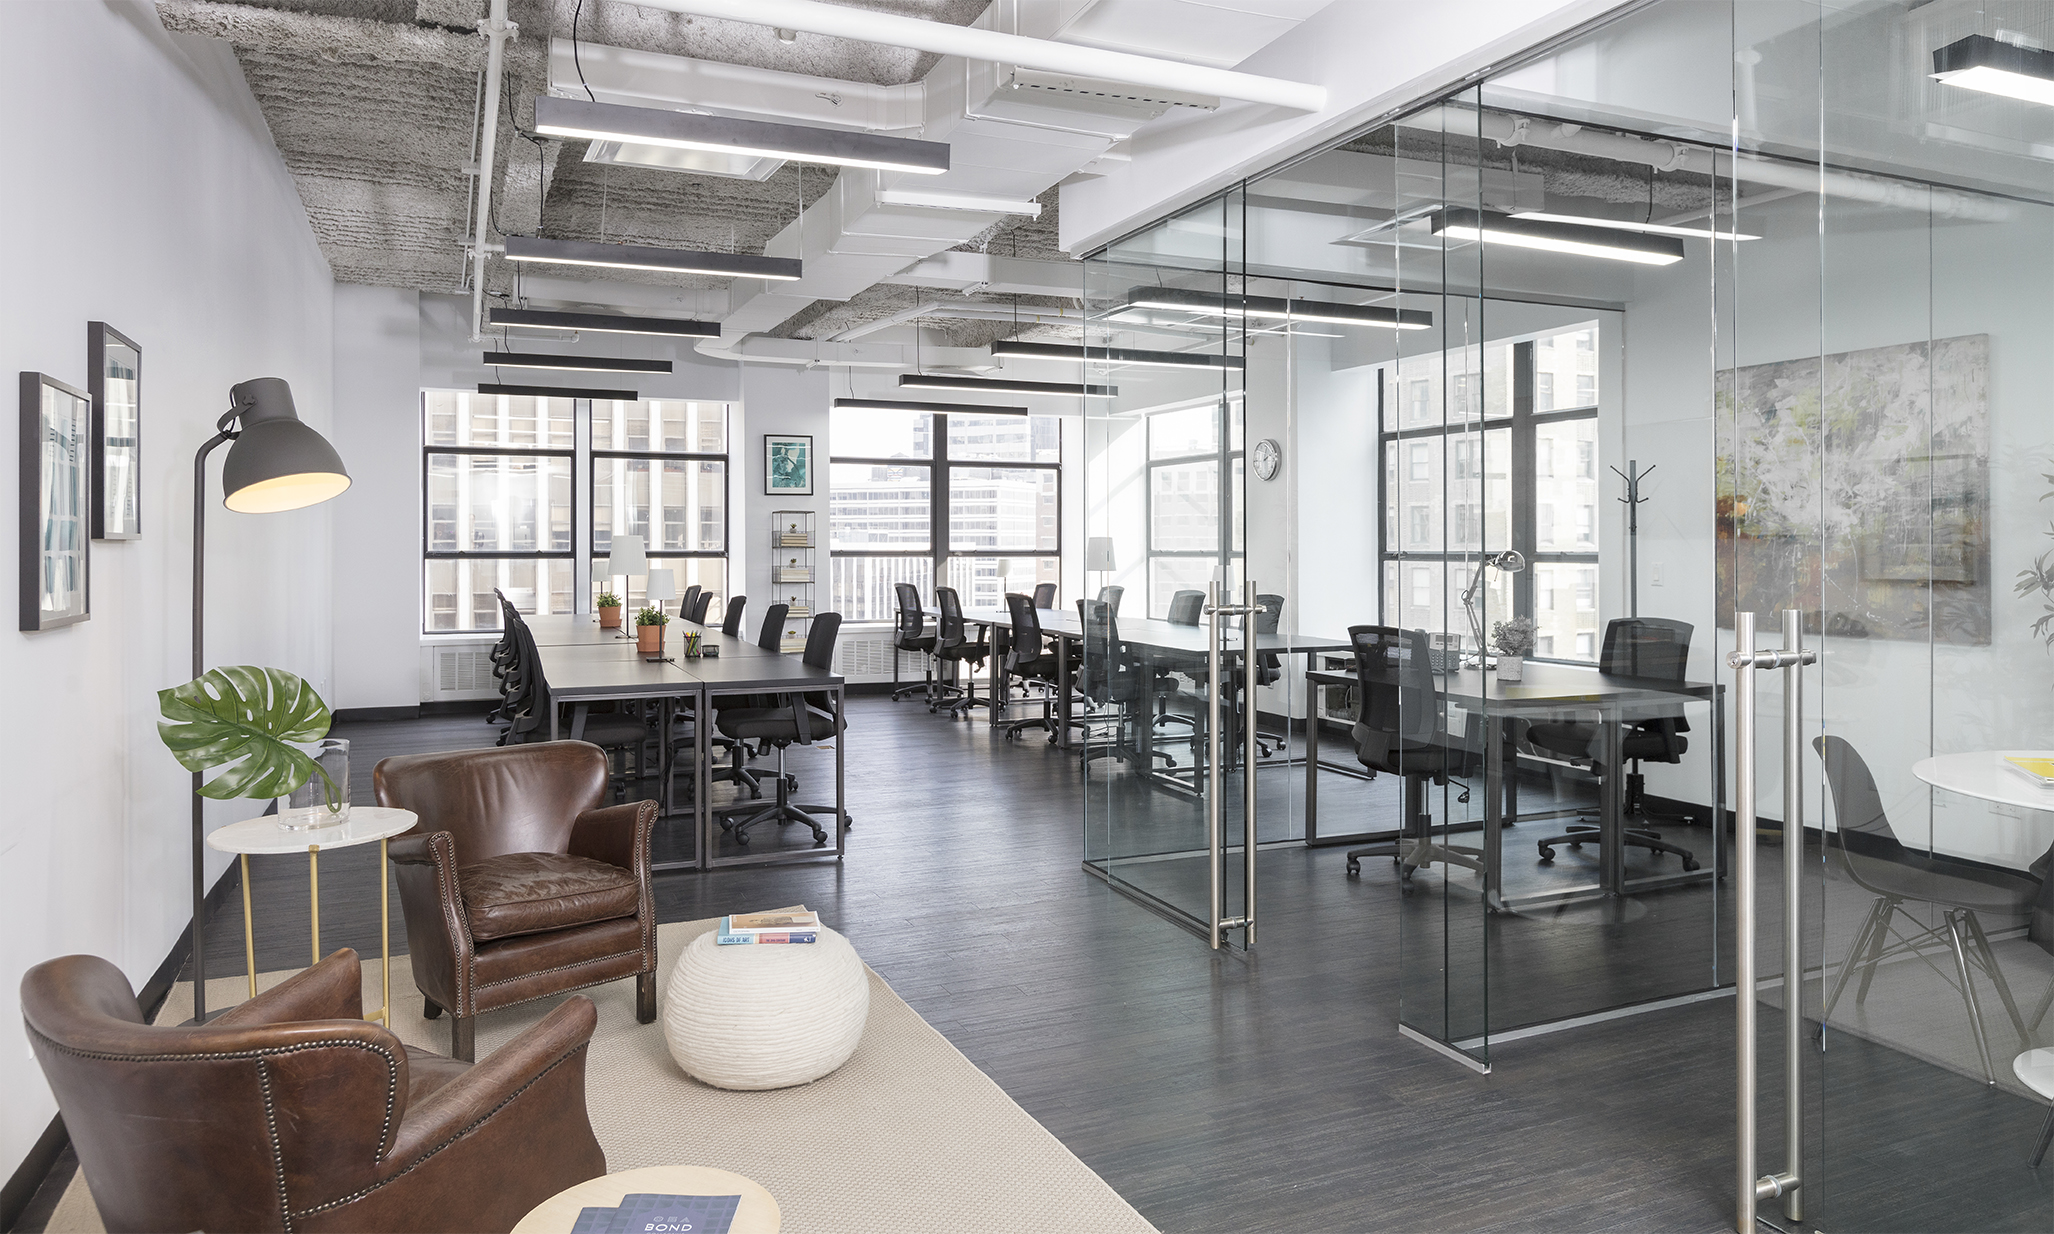 25 Person Suite located at BOND Collective's 60 Broad Street Location.